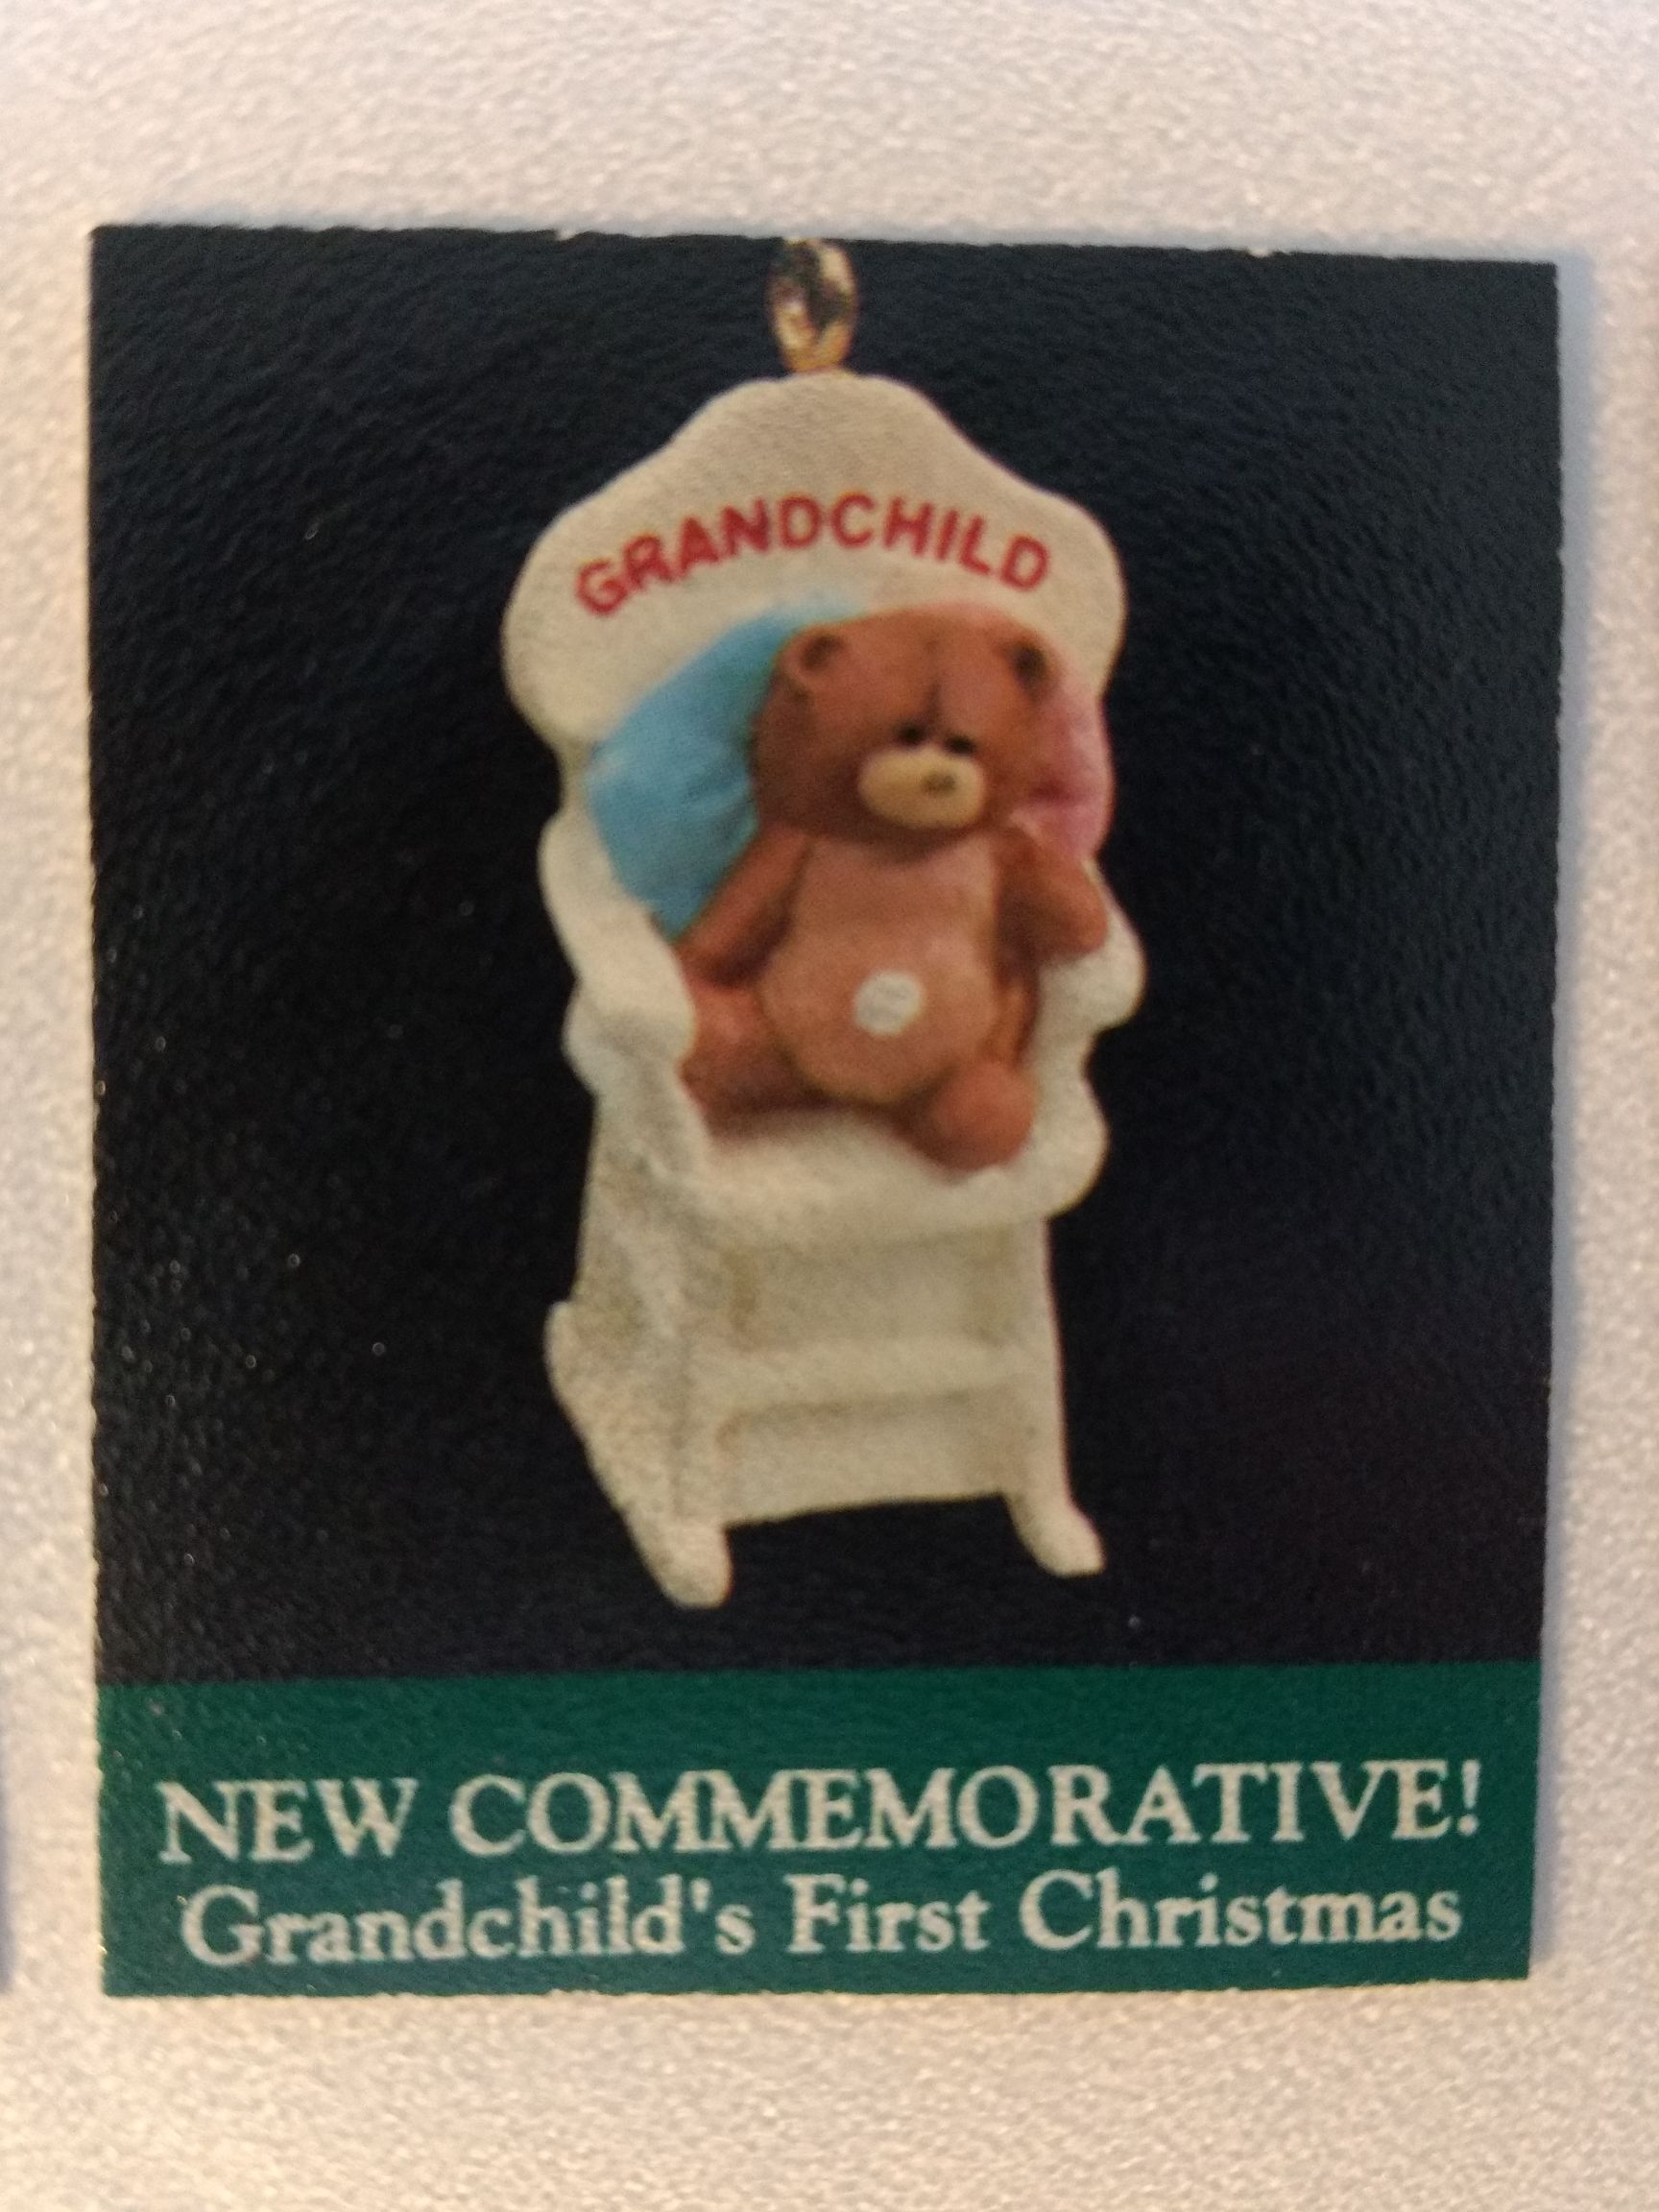 Z - Grandchilds First Christmas Ornament - Hallmark front image (front cover)